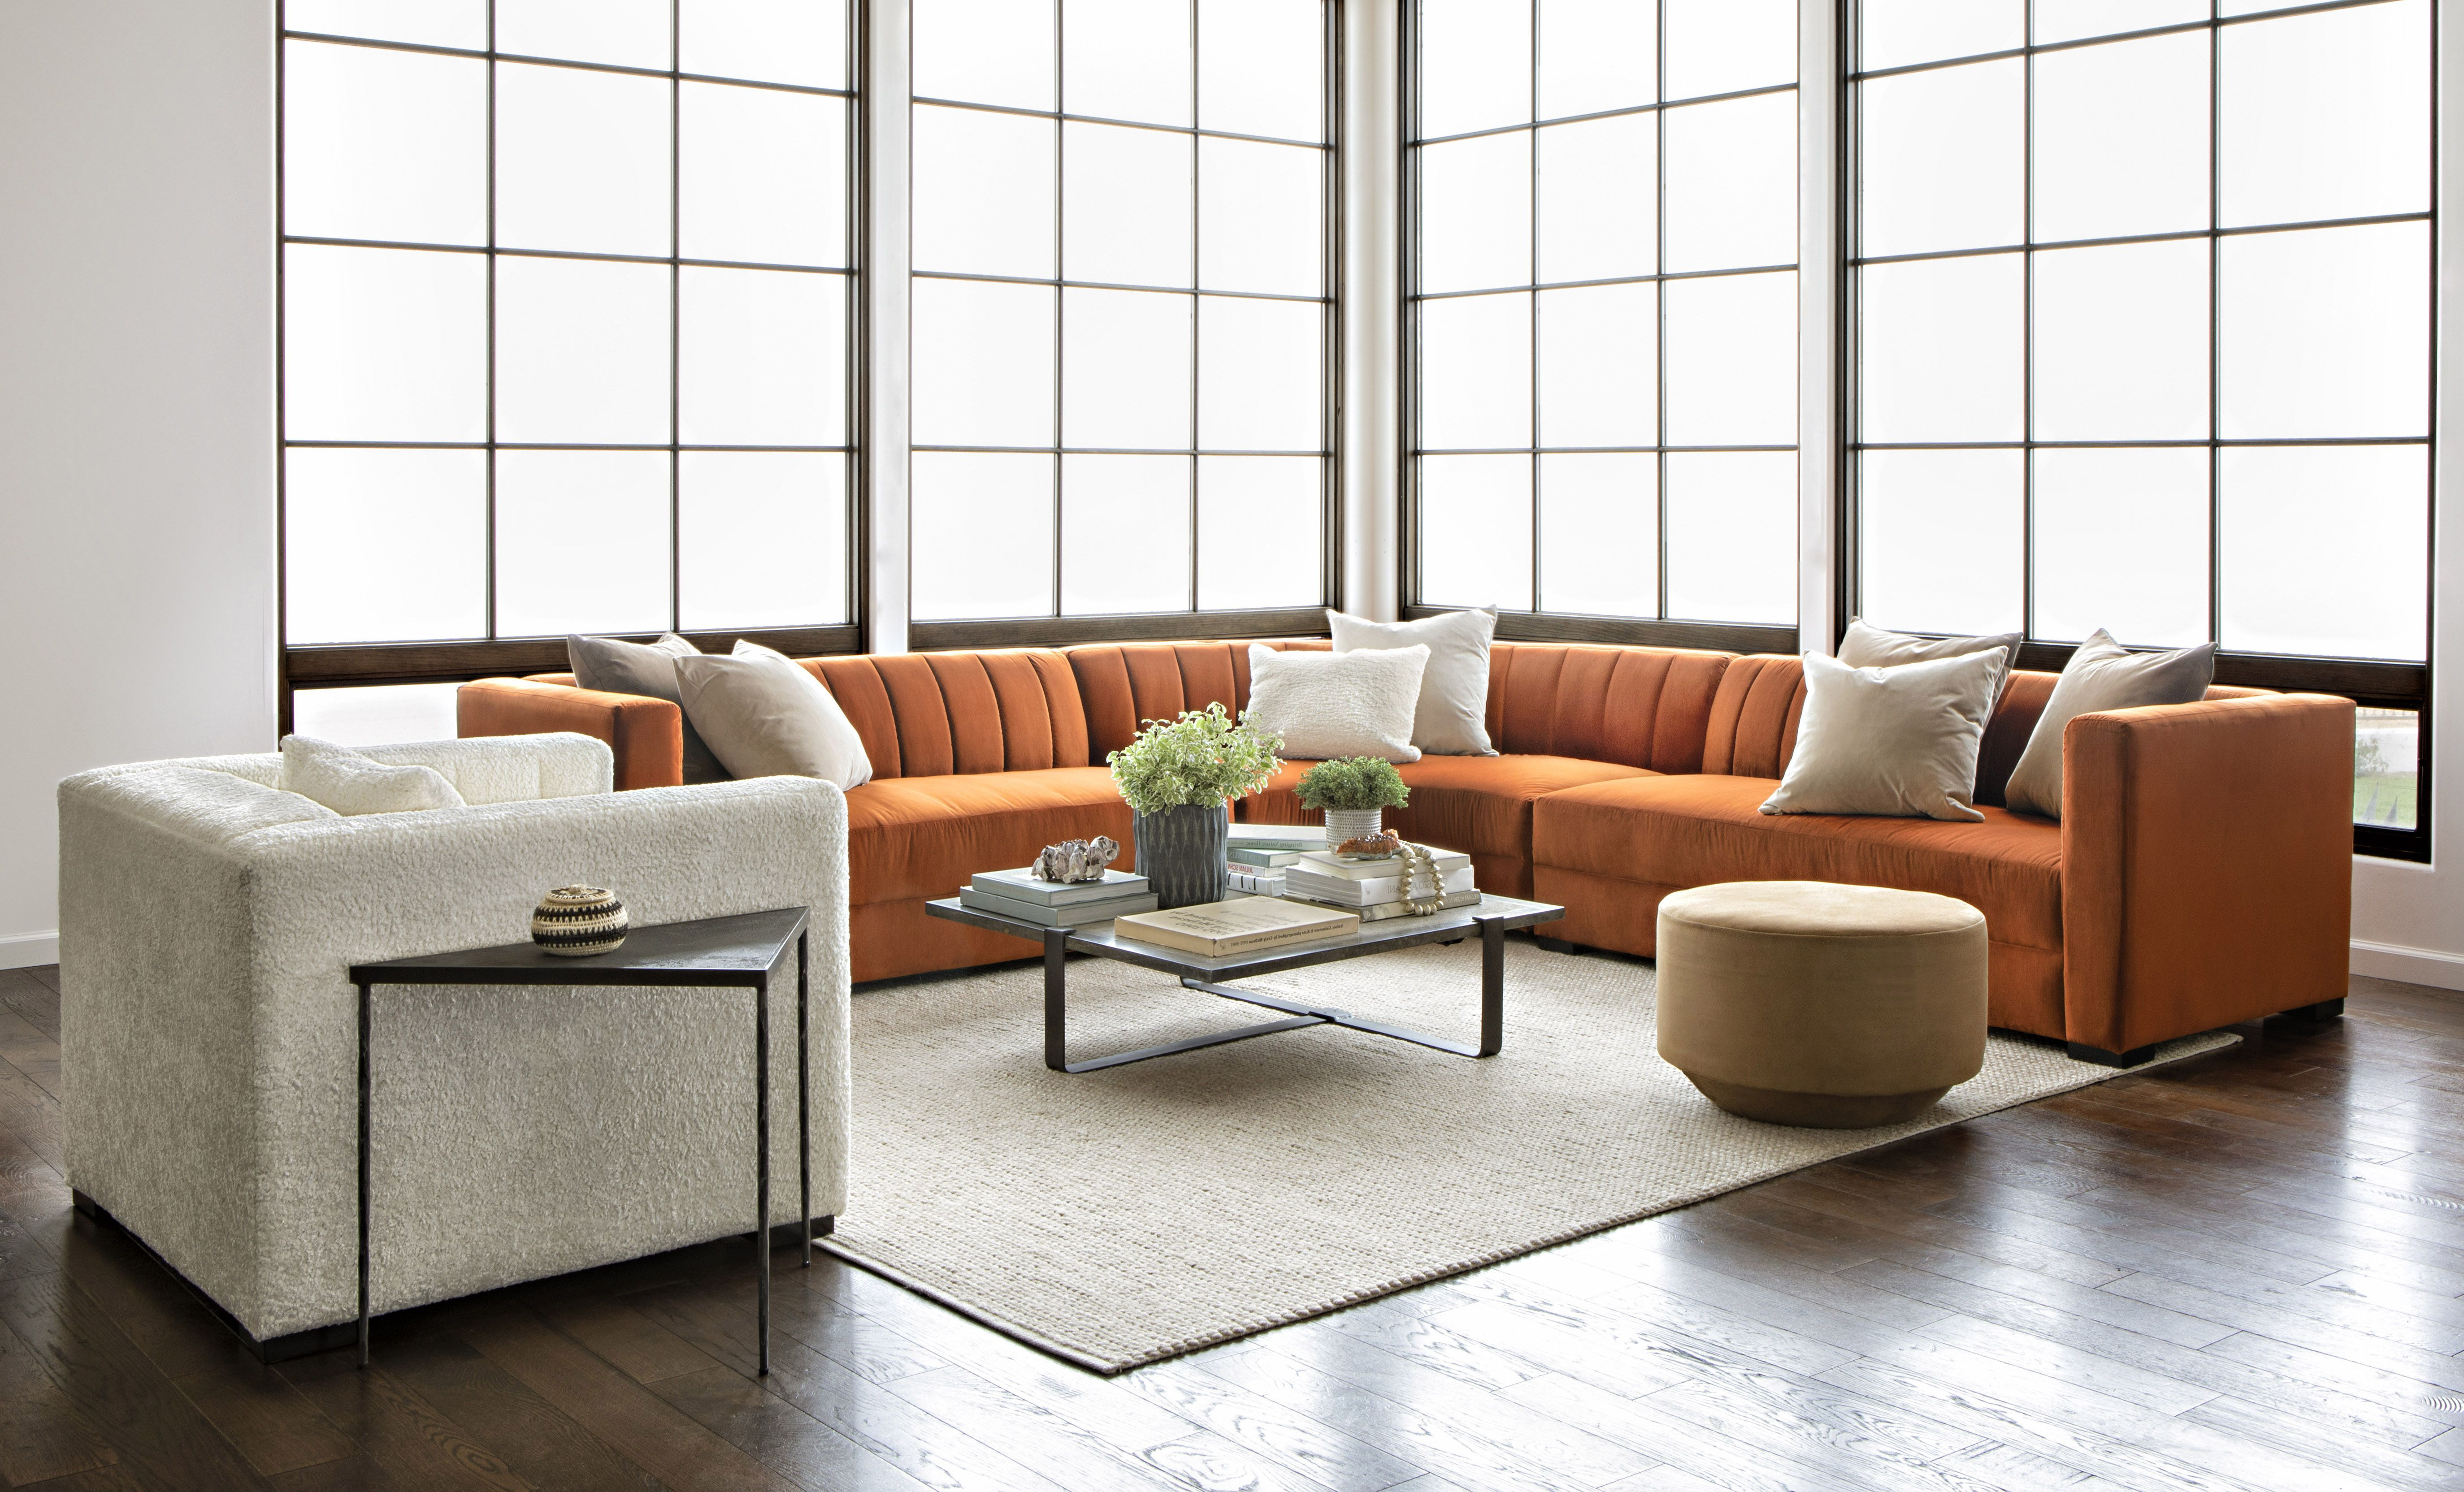 Matteo Arm Sofa Chairs By Nate Berkus And Jeremiah Brent With Well Known Soane 3 Piece Sectionalnate Berkus And Jeremiah Brent (View 15 of 20)